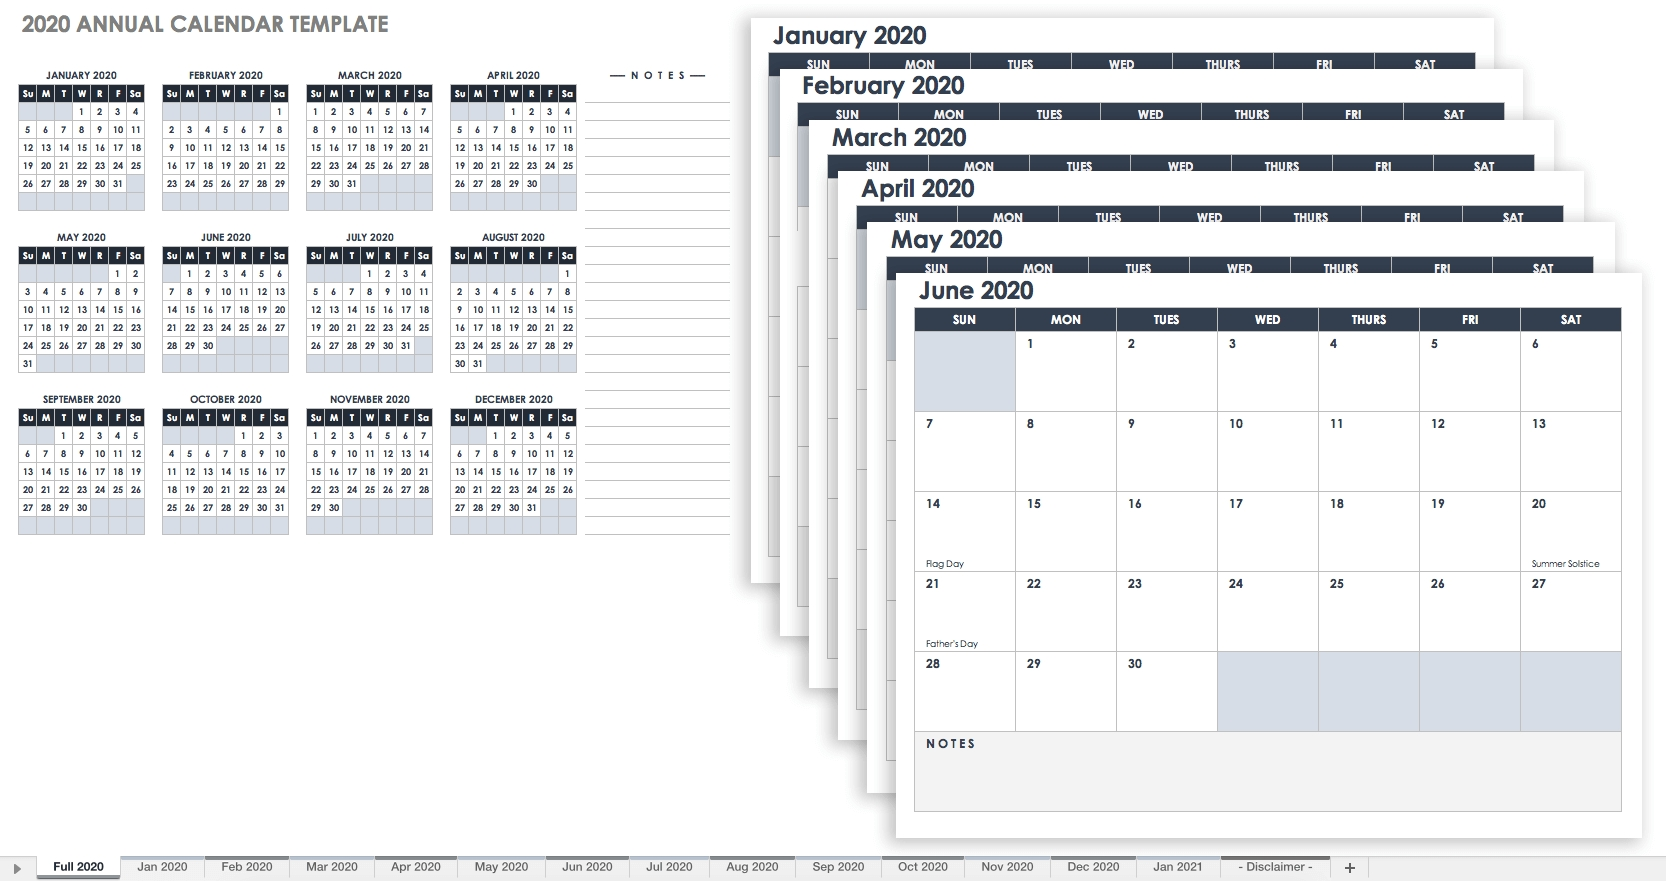 Free, Printable Excel Calendar Templates For 2019 & On | Smartsheet for List Dates Spreadhsheet For 2019-2020